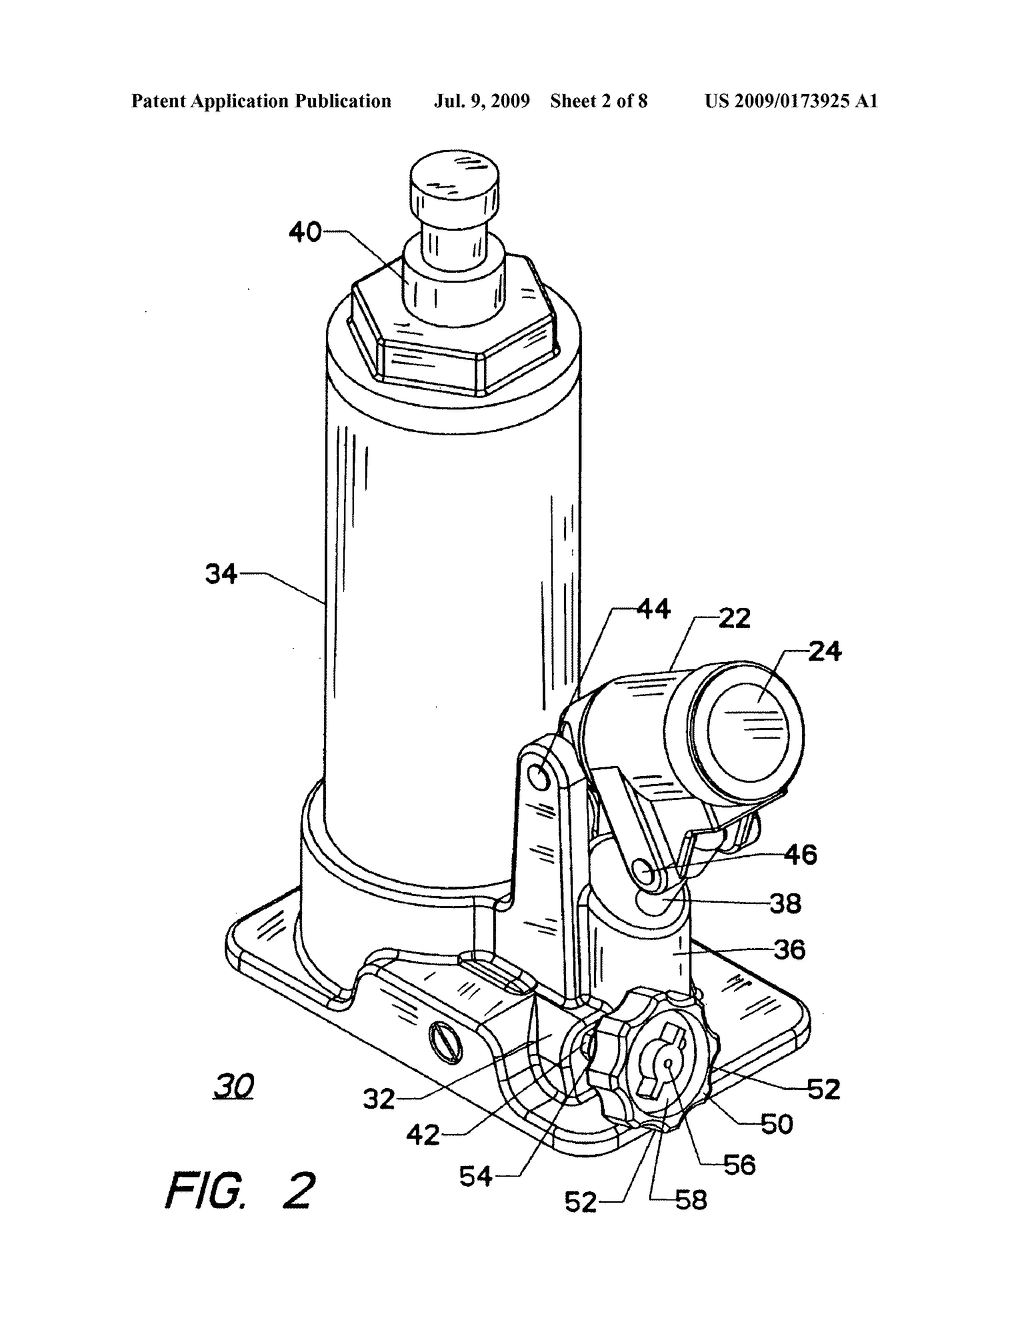 hydraulic bottle jack with a control valve having a control knob    hydraulic bottle jack   a control valve having a control knob and an automatic return   diagram  schematic  and image